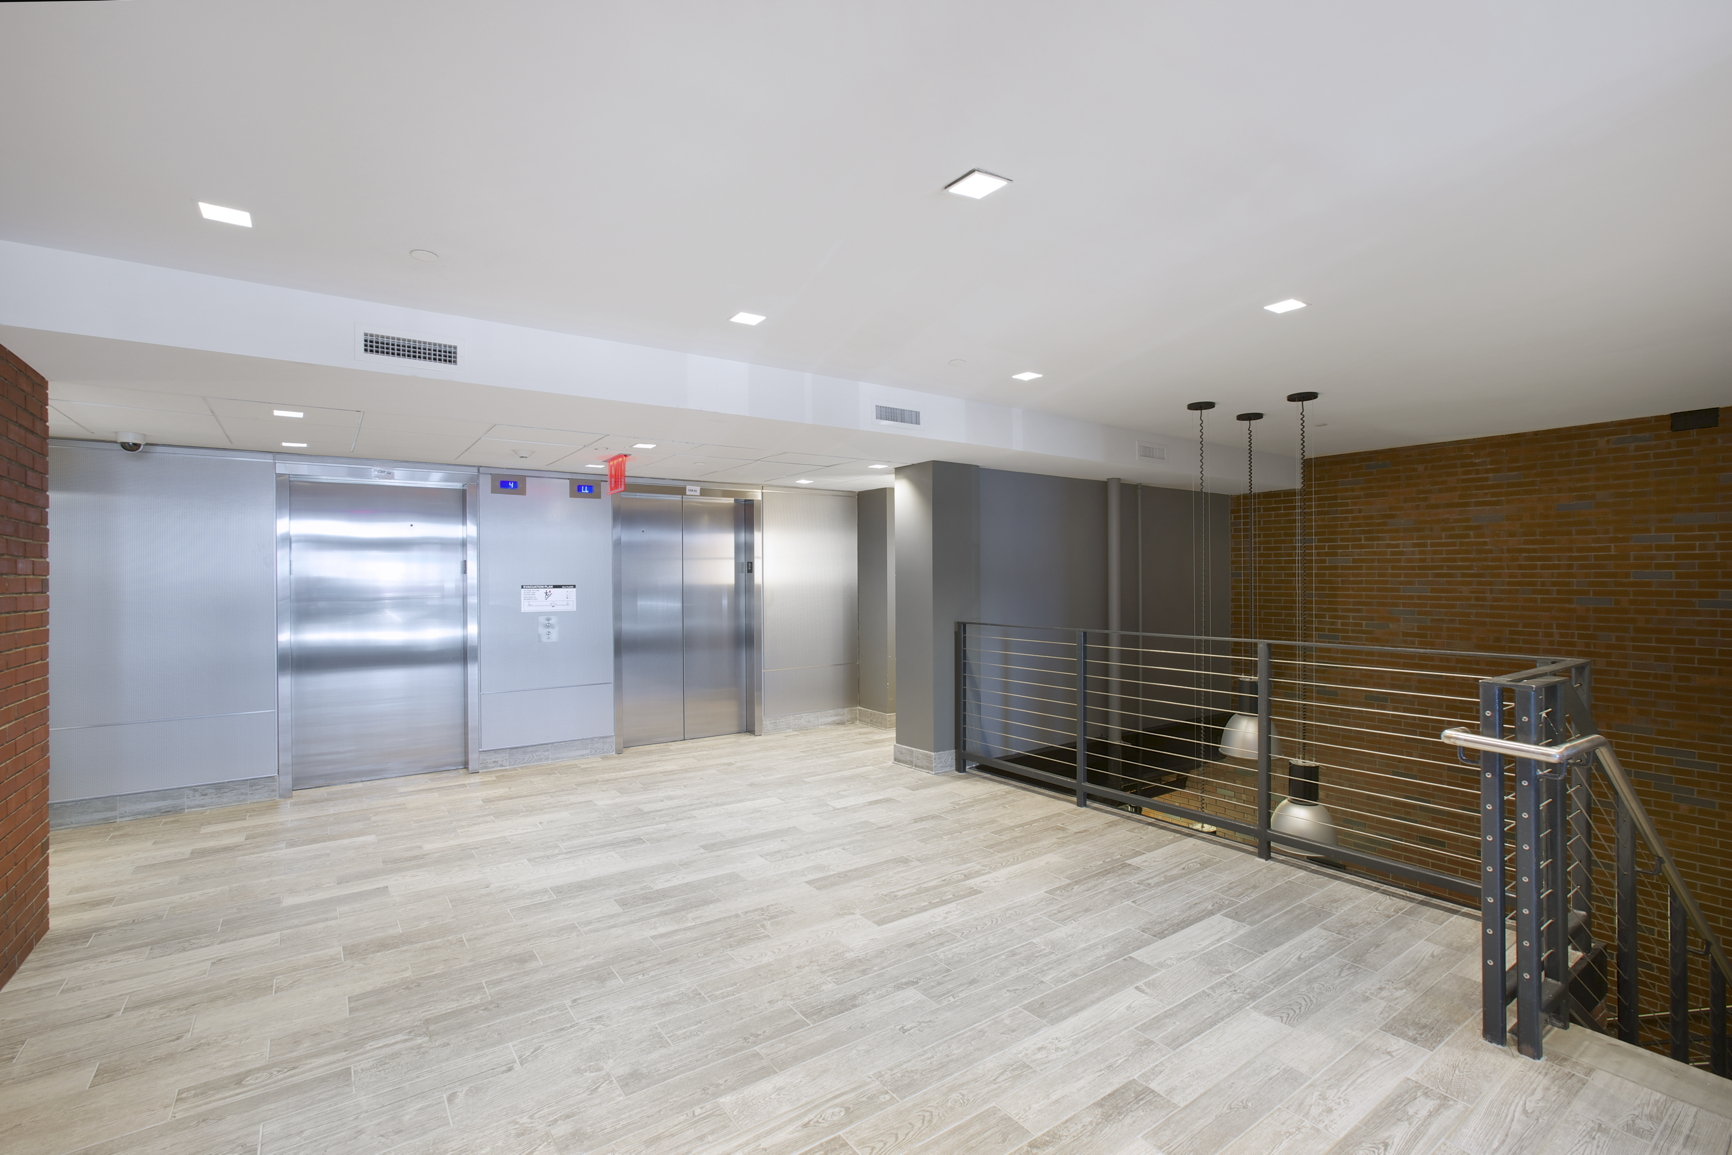 Upper Lobby - Photo courtesy of client